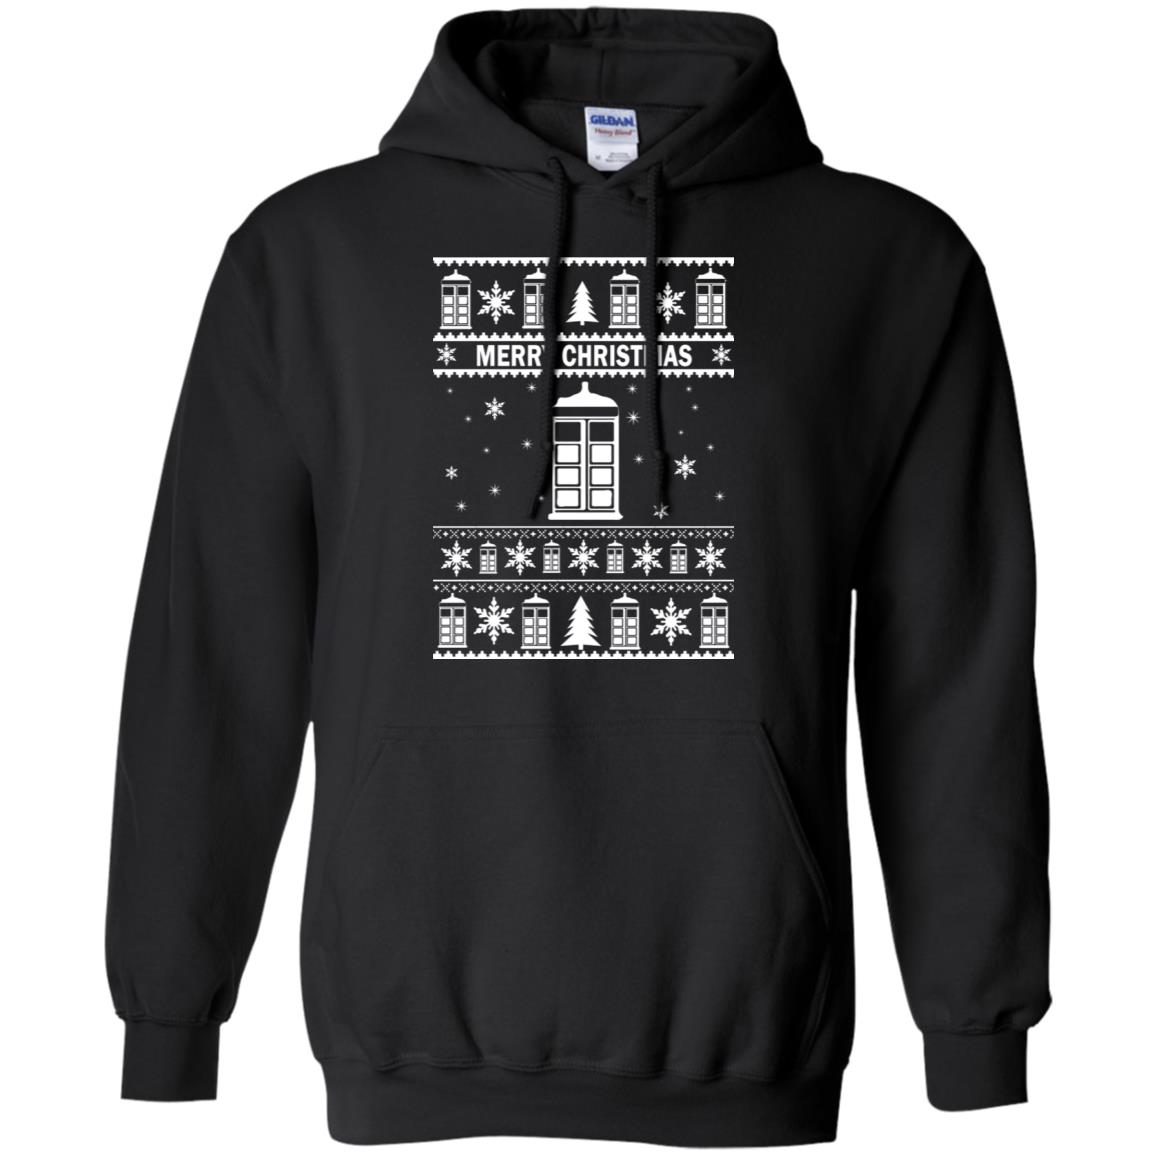 Dr Who Christmas Sweater.Doctor Who Merry Christmas Sweater